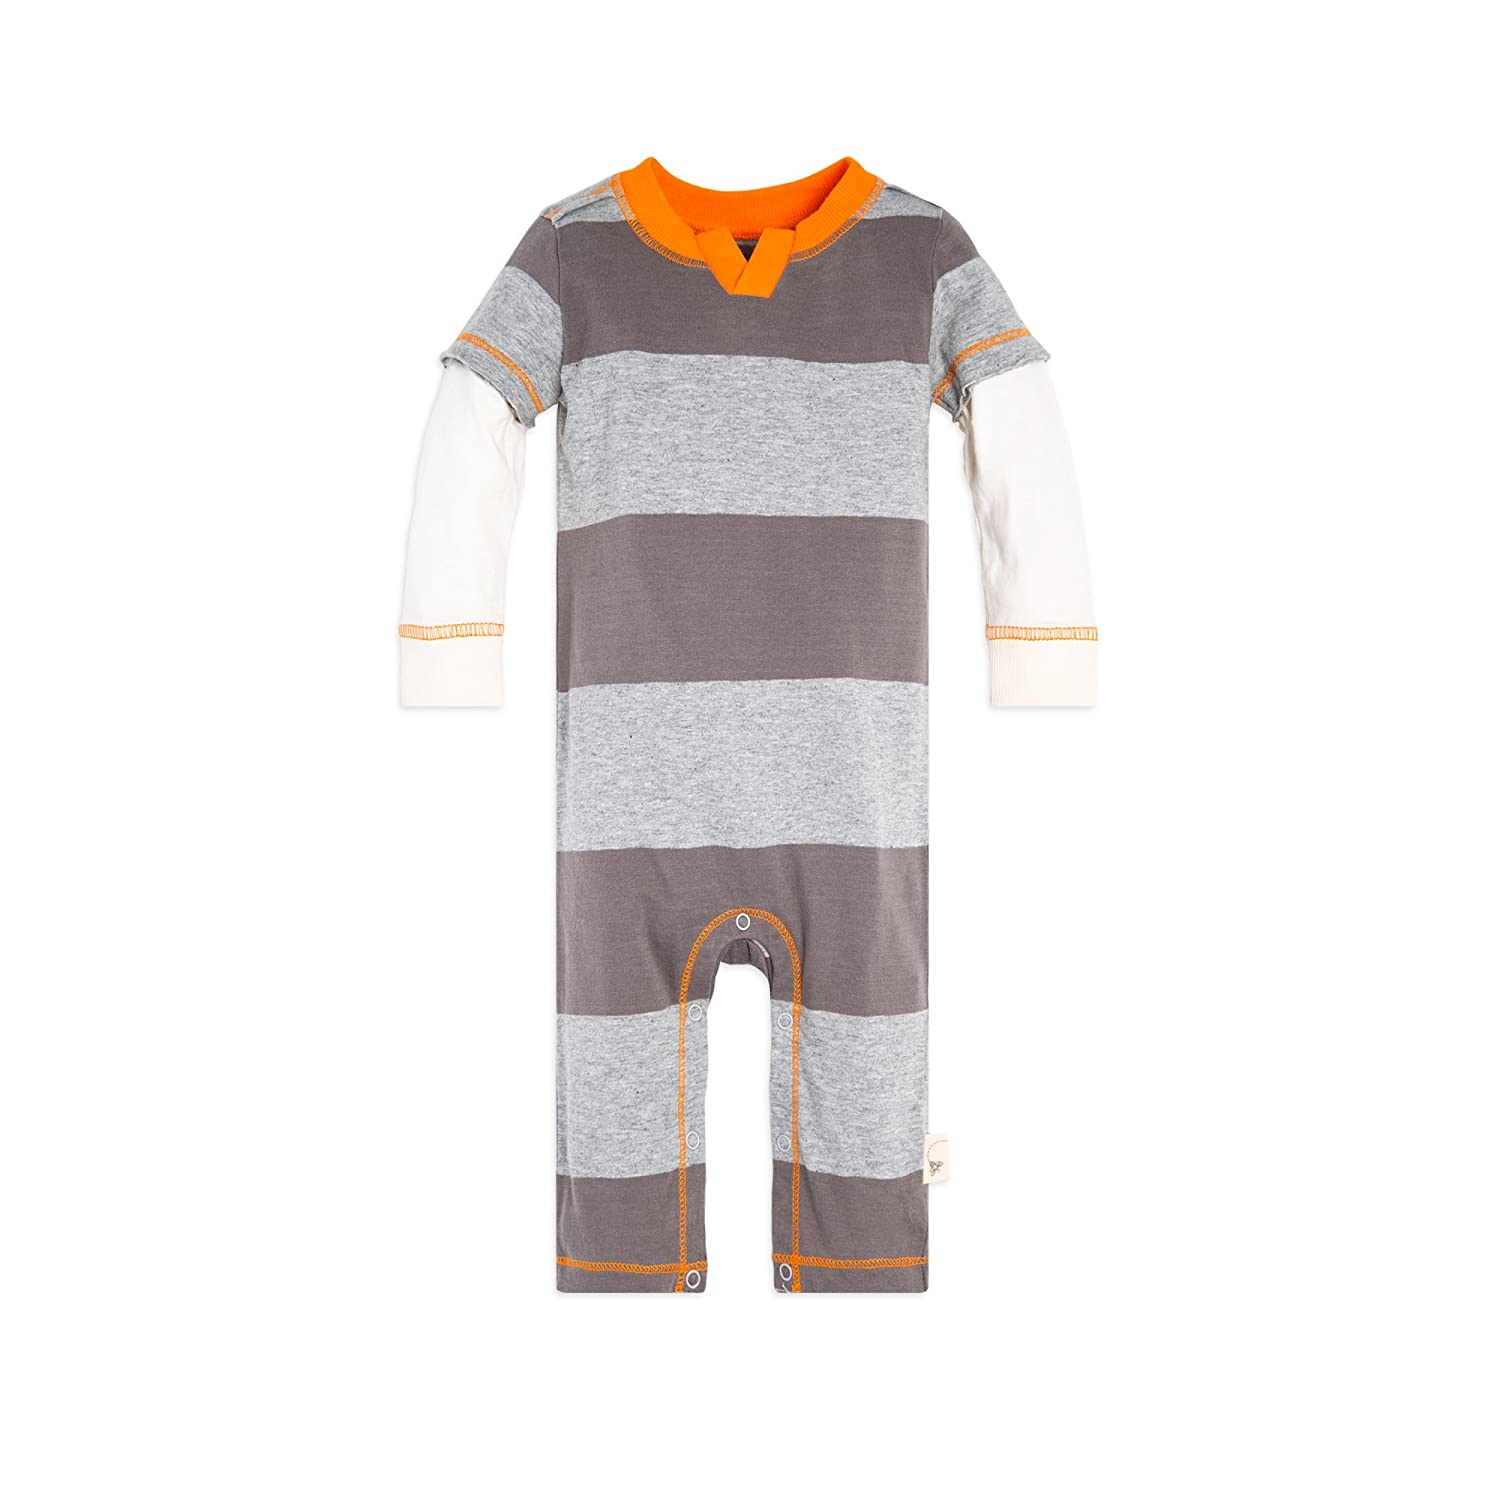 8afbd8c23efb Burt s Bees Baby - Boys Romper Jumpsuit One piece outfits make changes  hassle-free